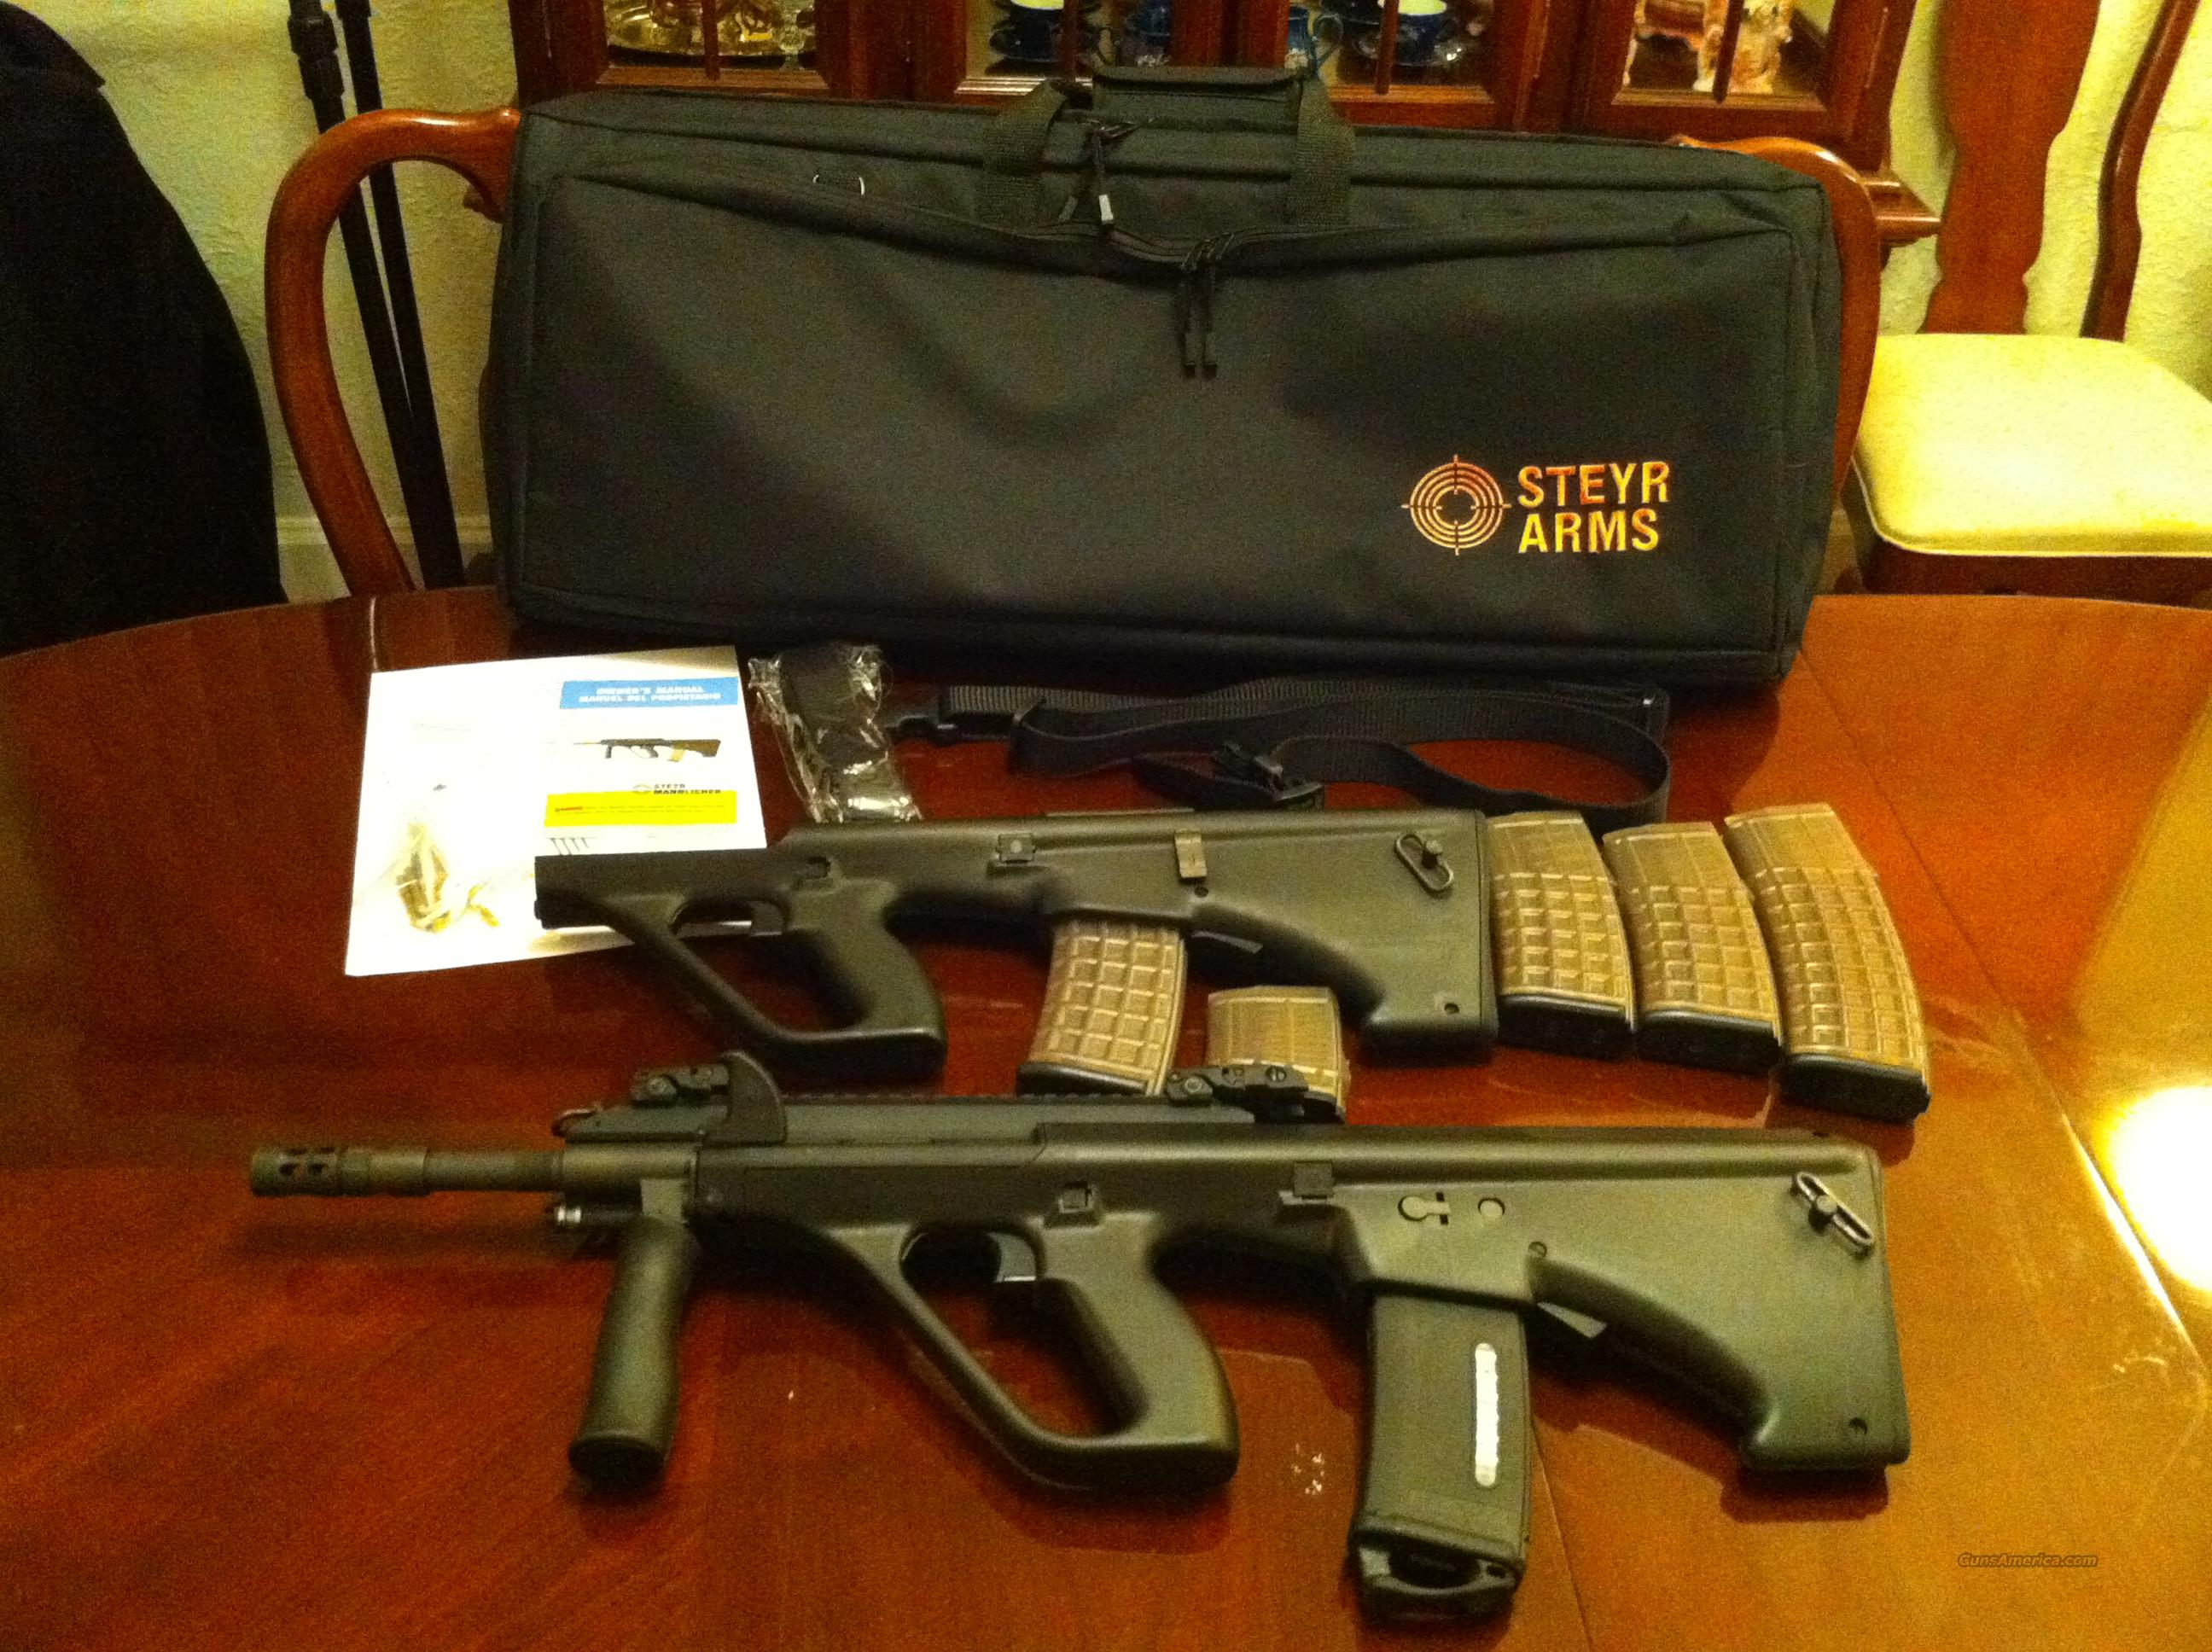 Super Steyr AUG A3 Package 556 - NATO Stock + Steyr AUG Stock! NIB  Guns > Rifles > Steyr Rifles